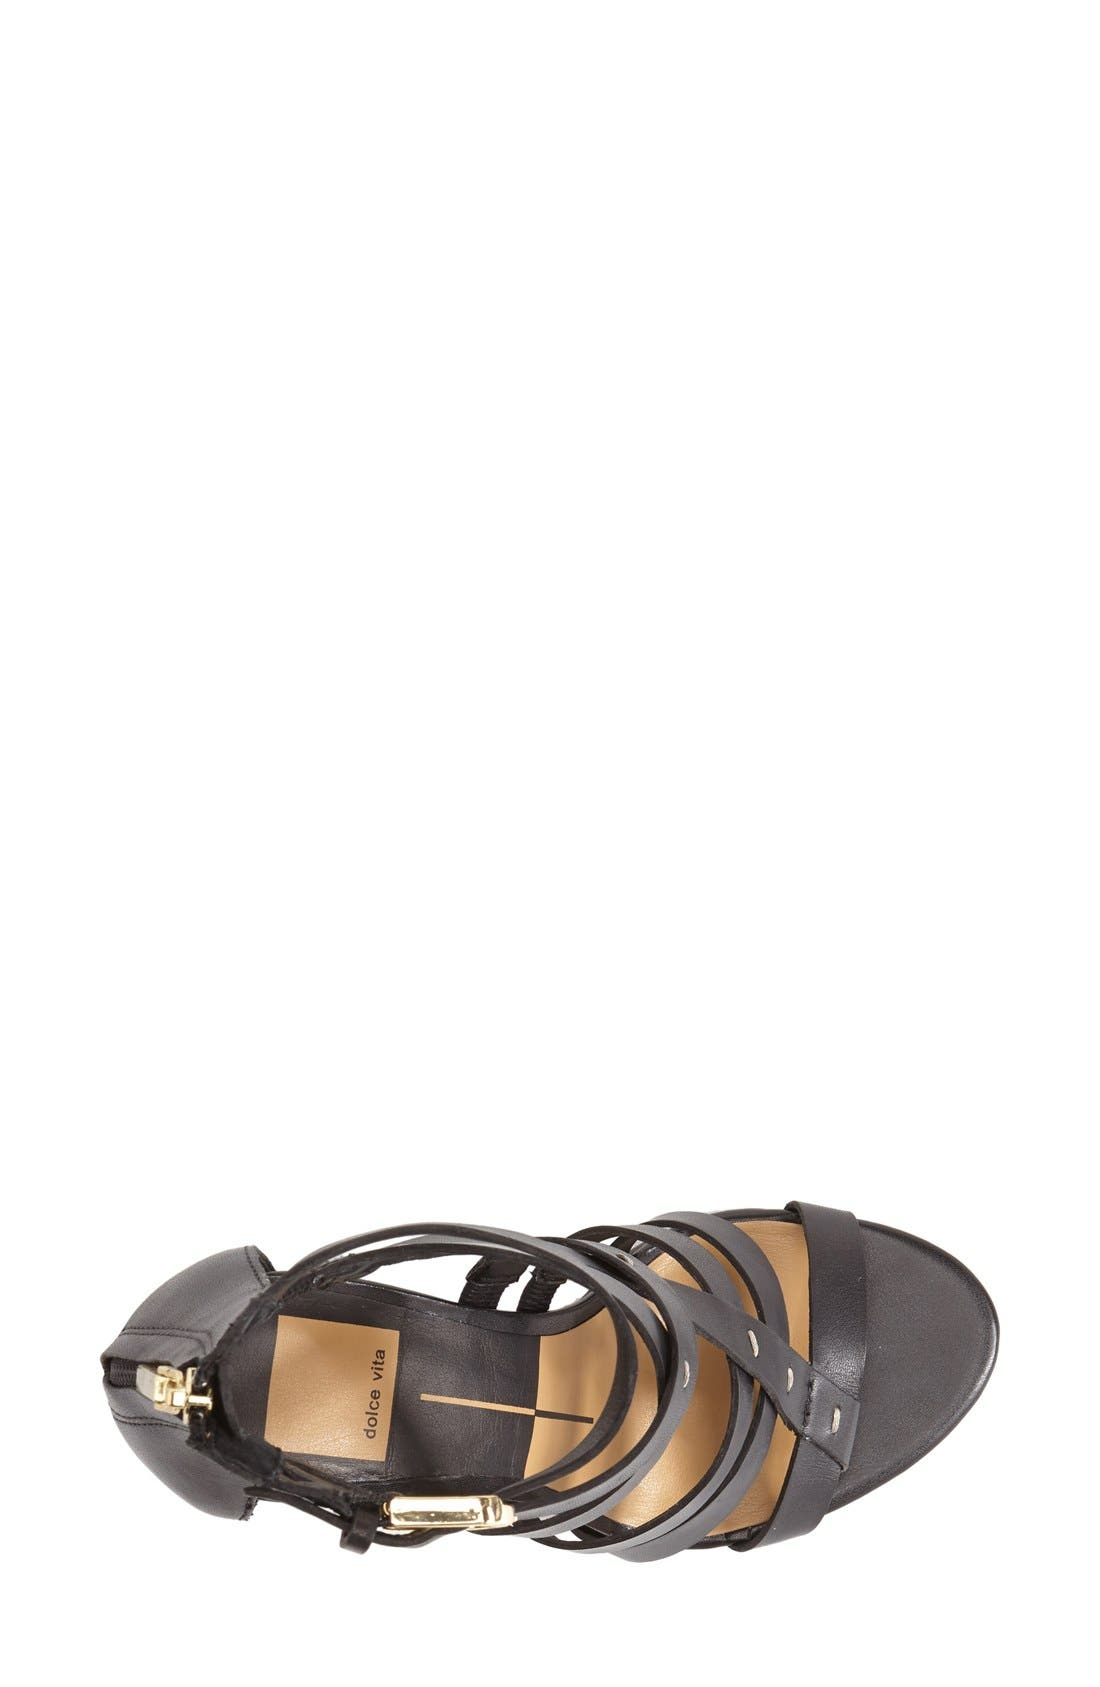 DOLCE VITA, 'Nolin' Leather Sandal, Alternate thumbnail 2, color, 001